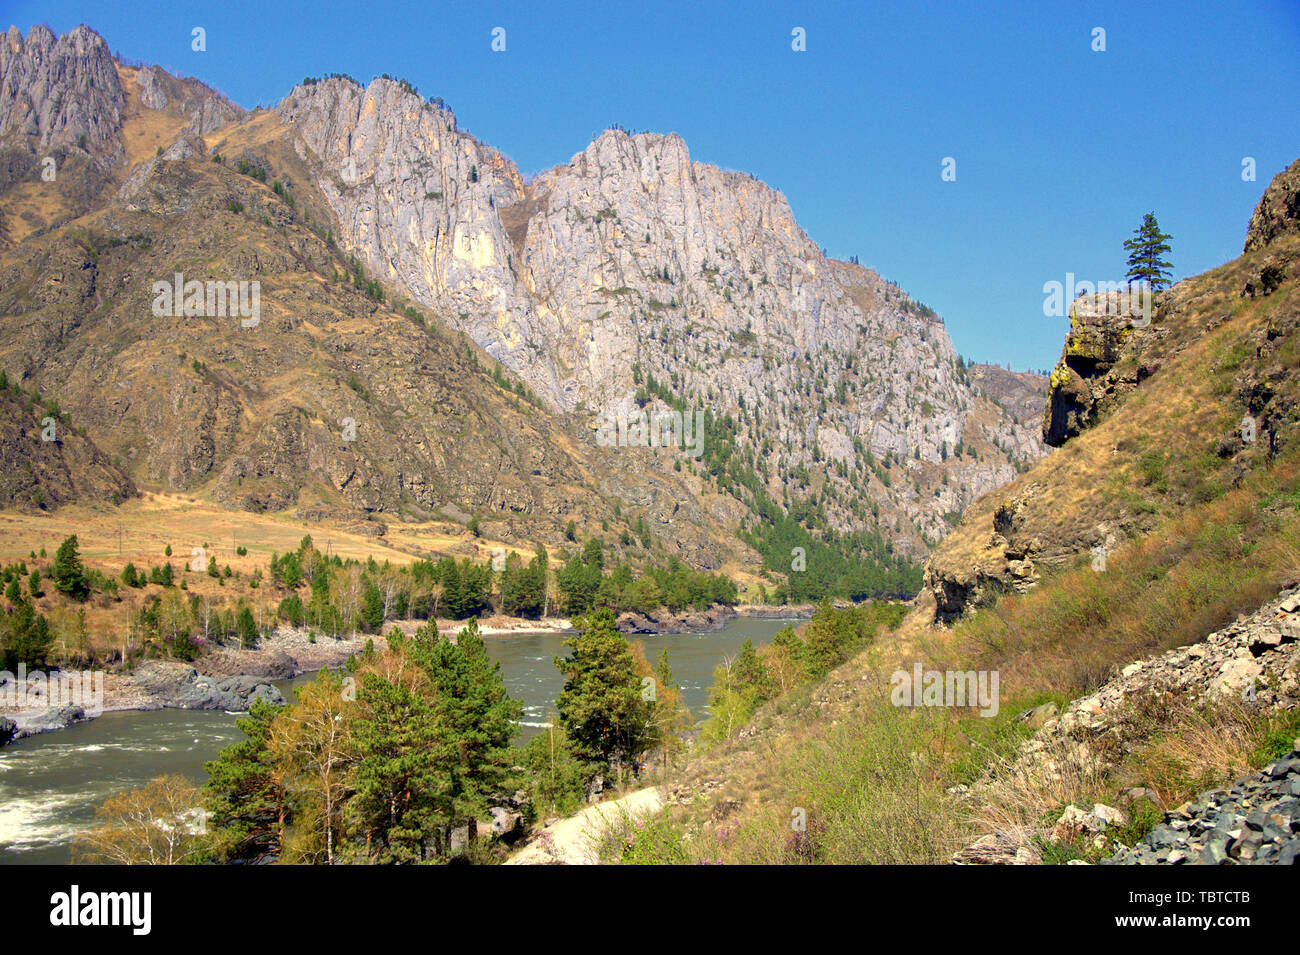 The swift Katun River carries its turquoise waters along the foot of the Altai Mountains. Gorny Altai, Siberia, Russia. - Stock Image